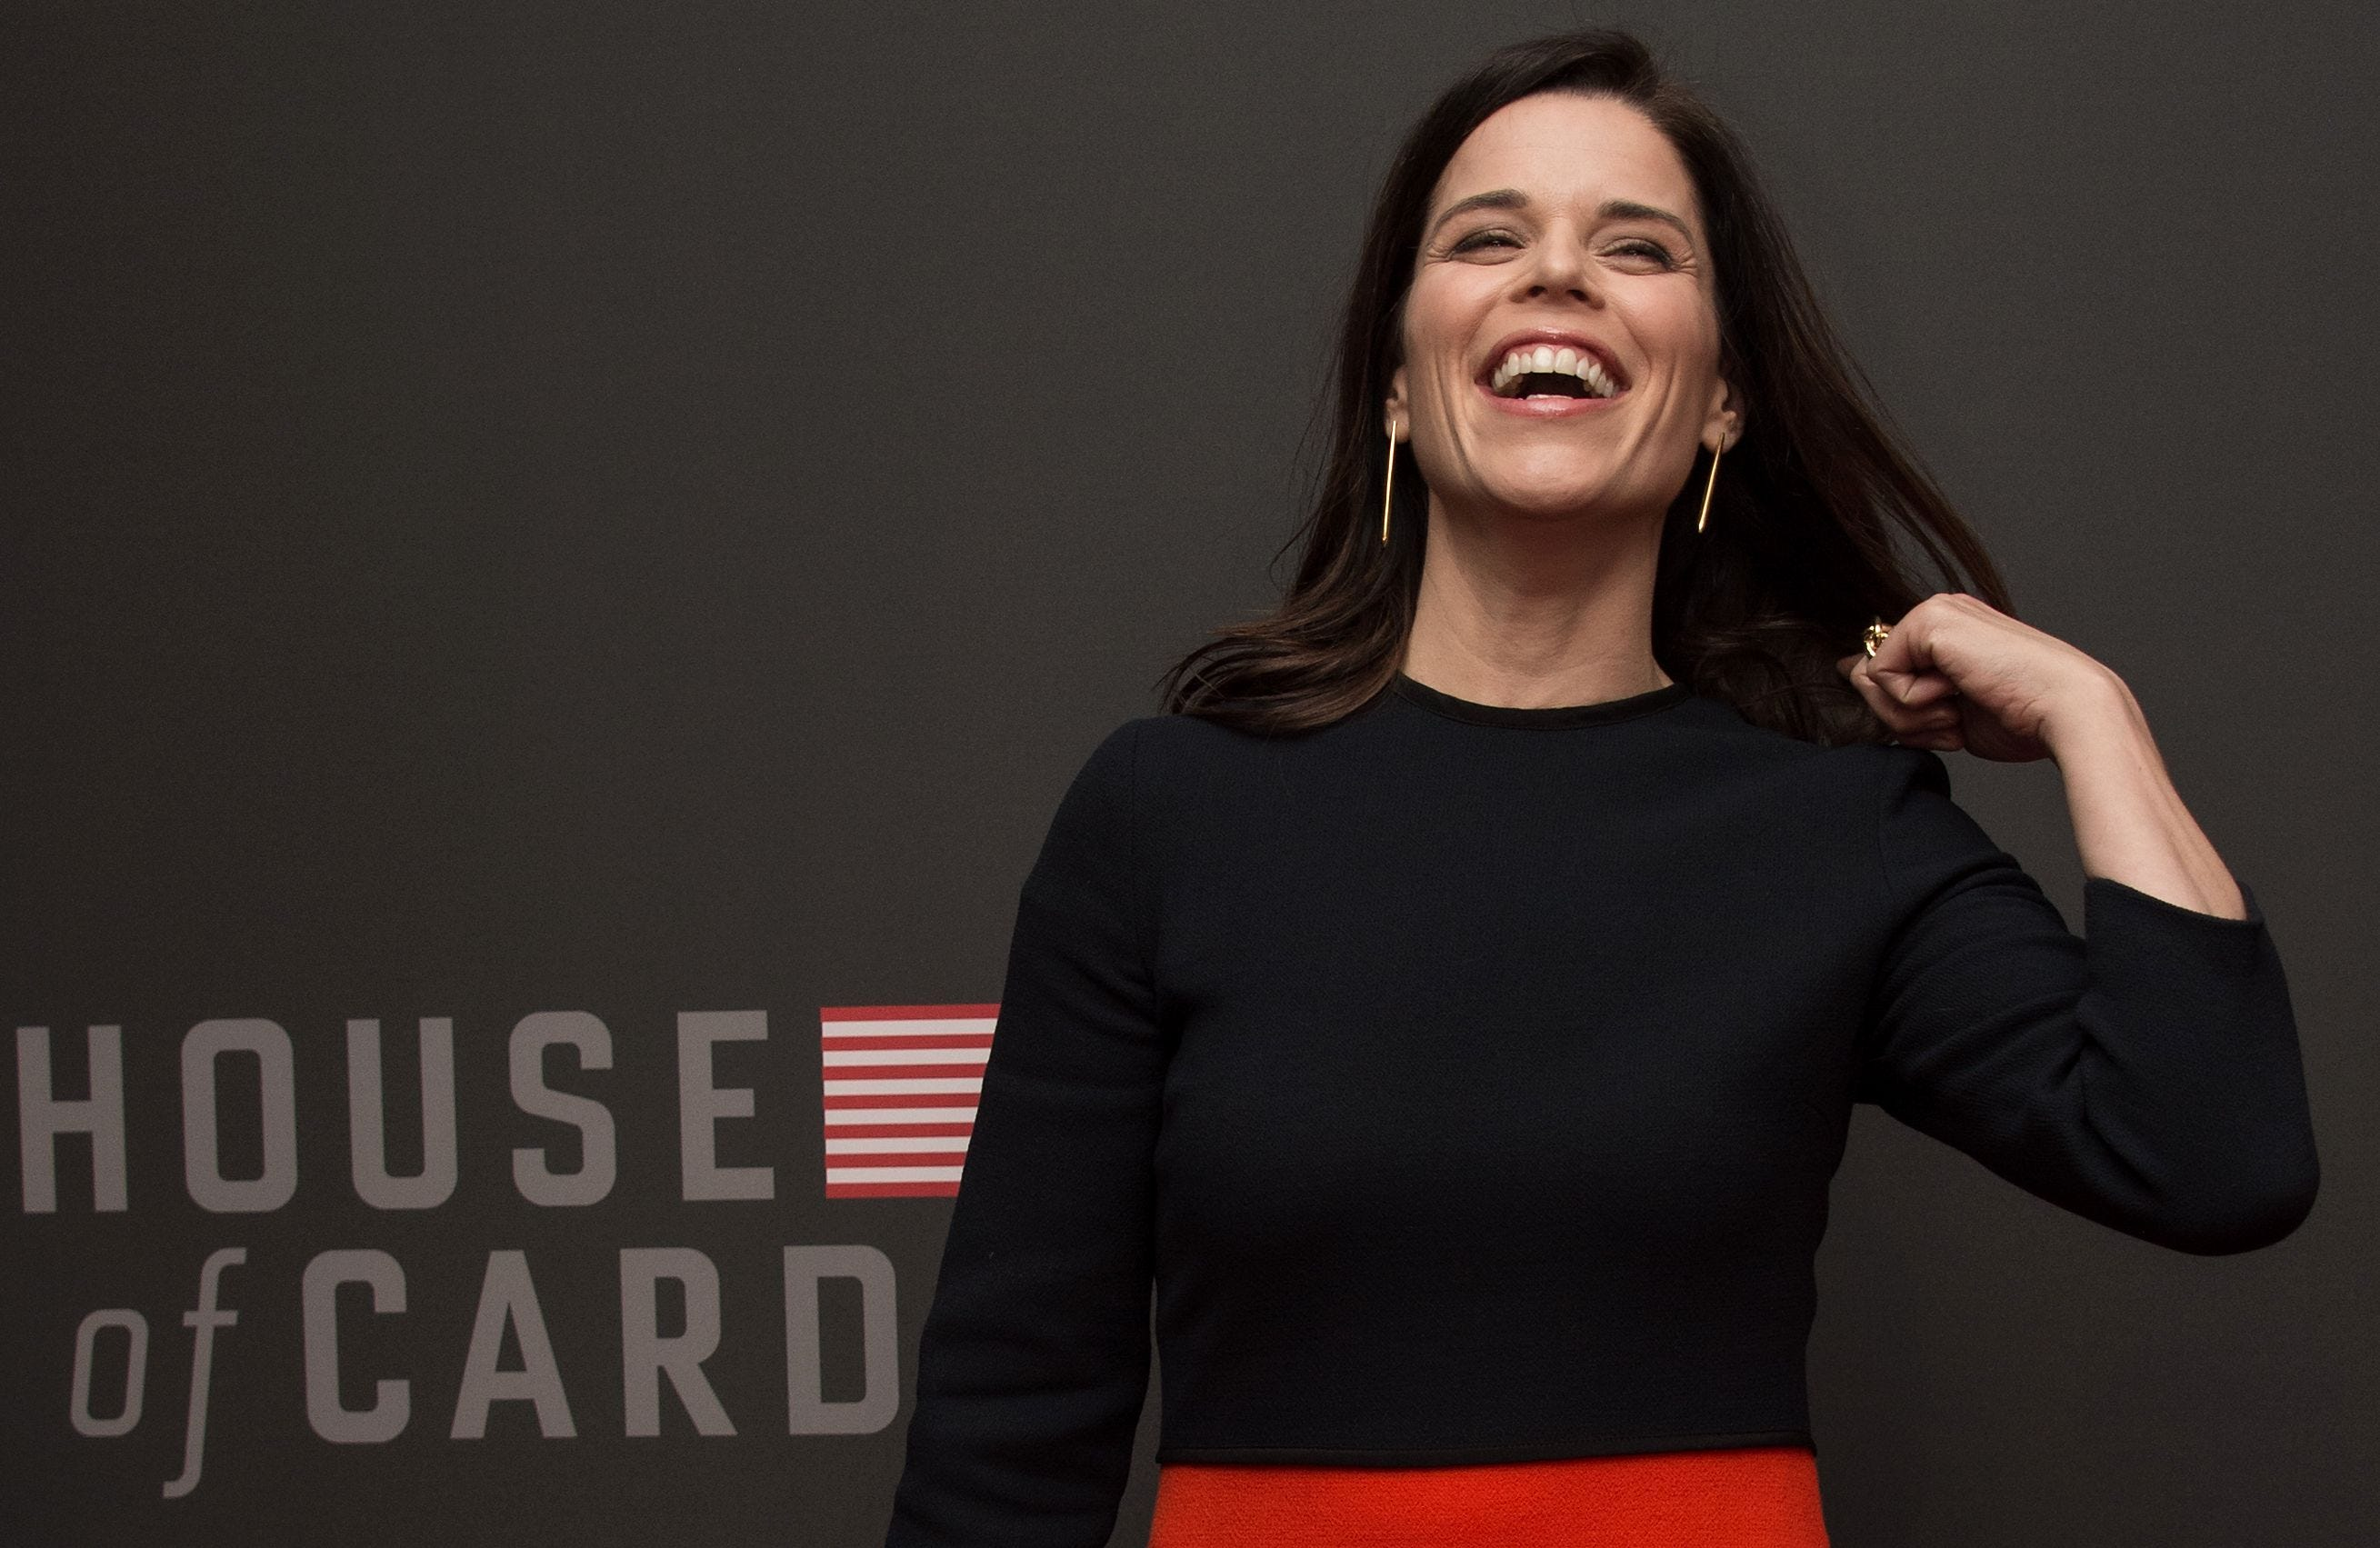 Neve Campbell Riffs On Finding Strong Female Roles, Joining U0027House Of Cardsu0027